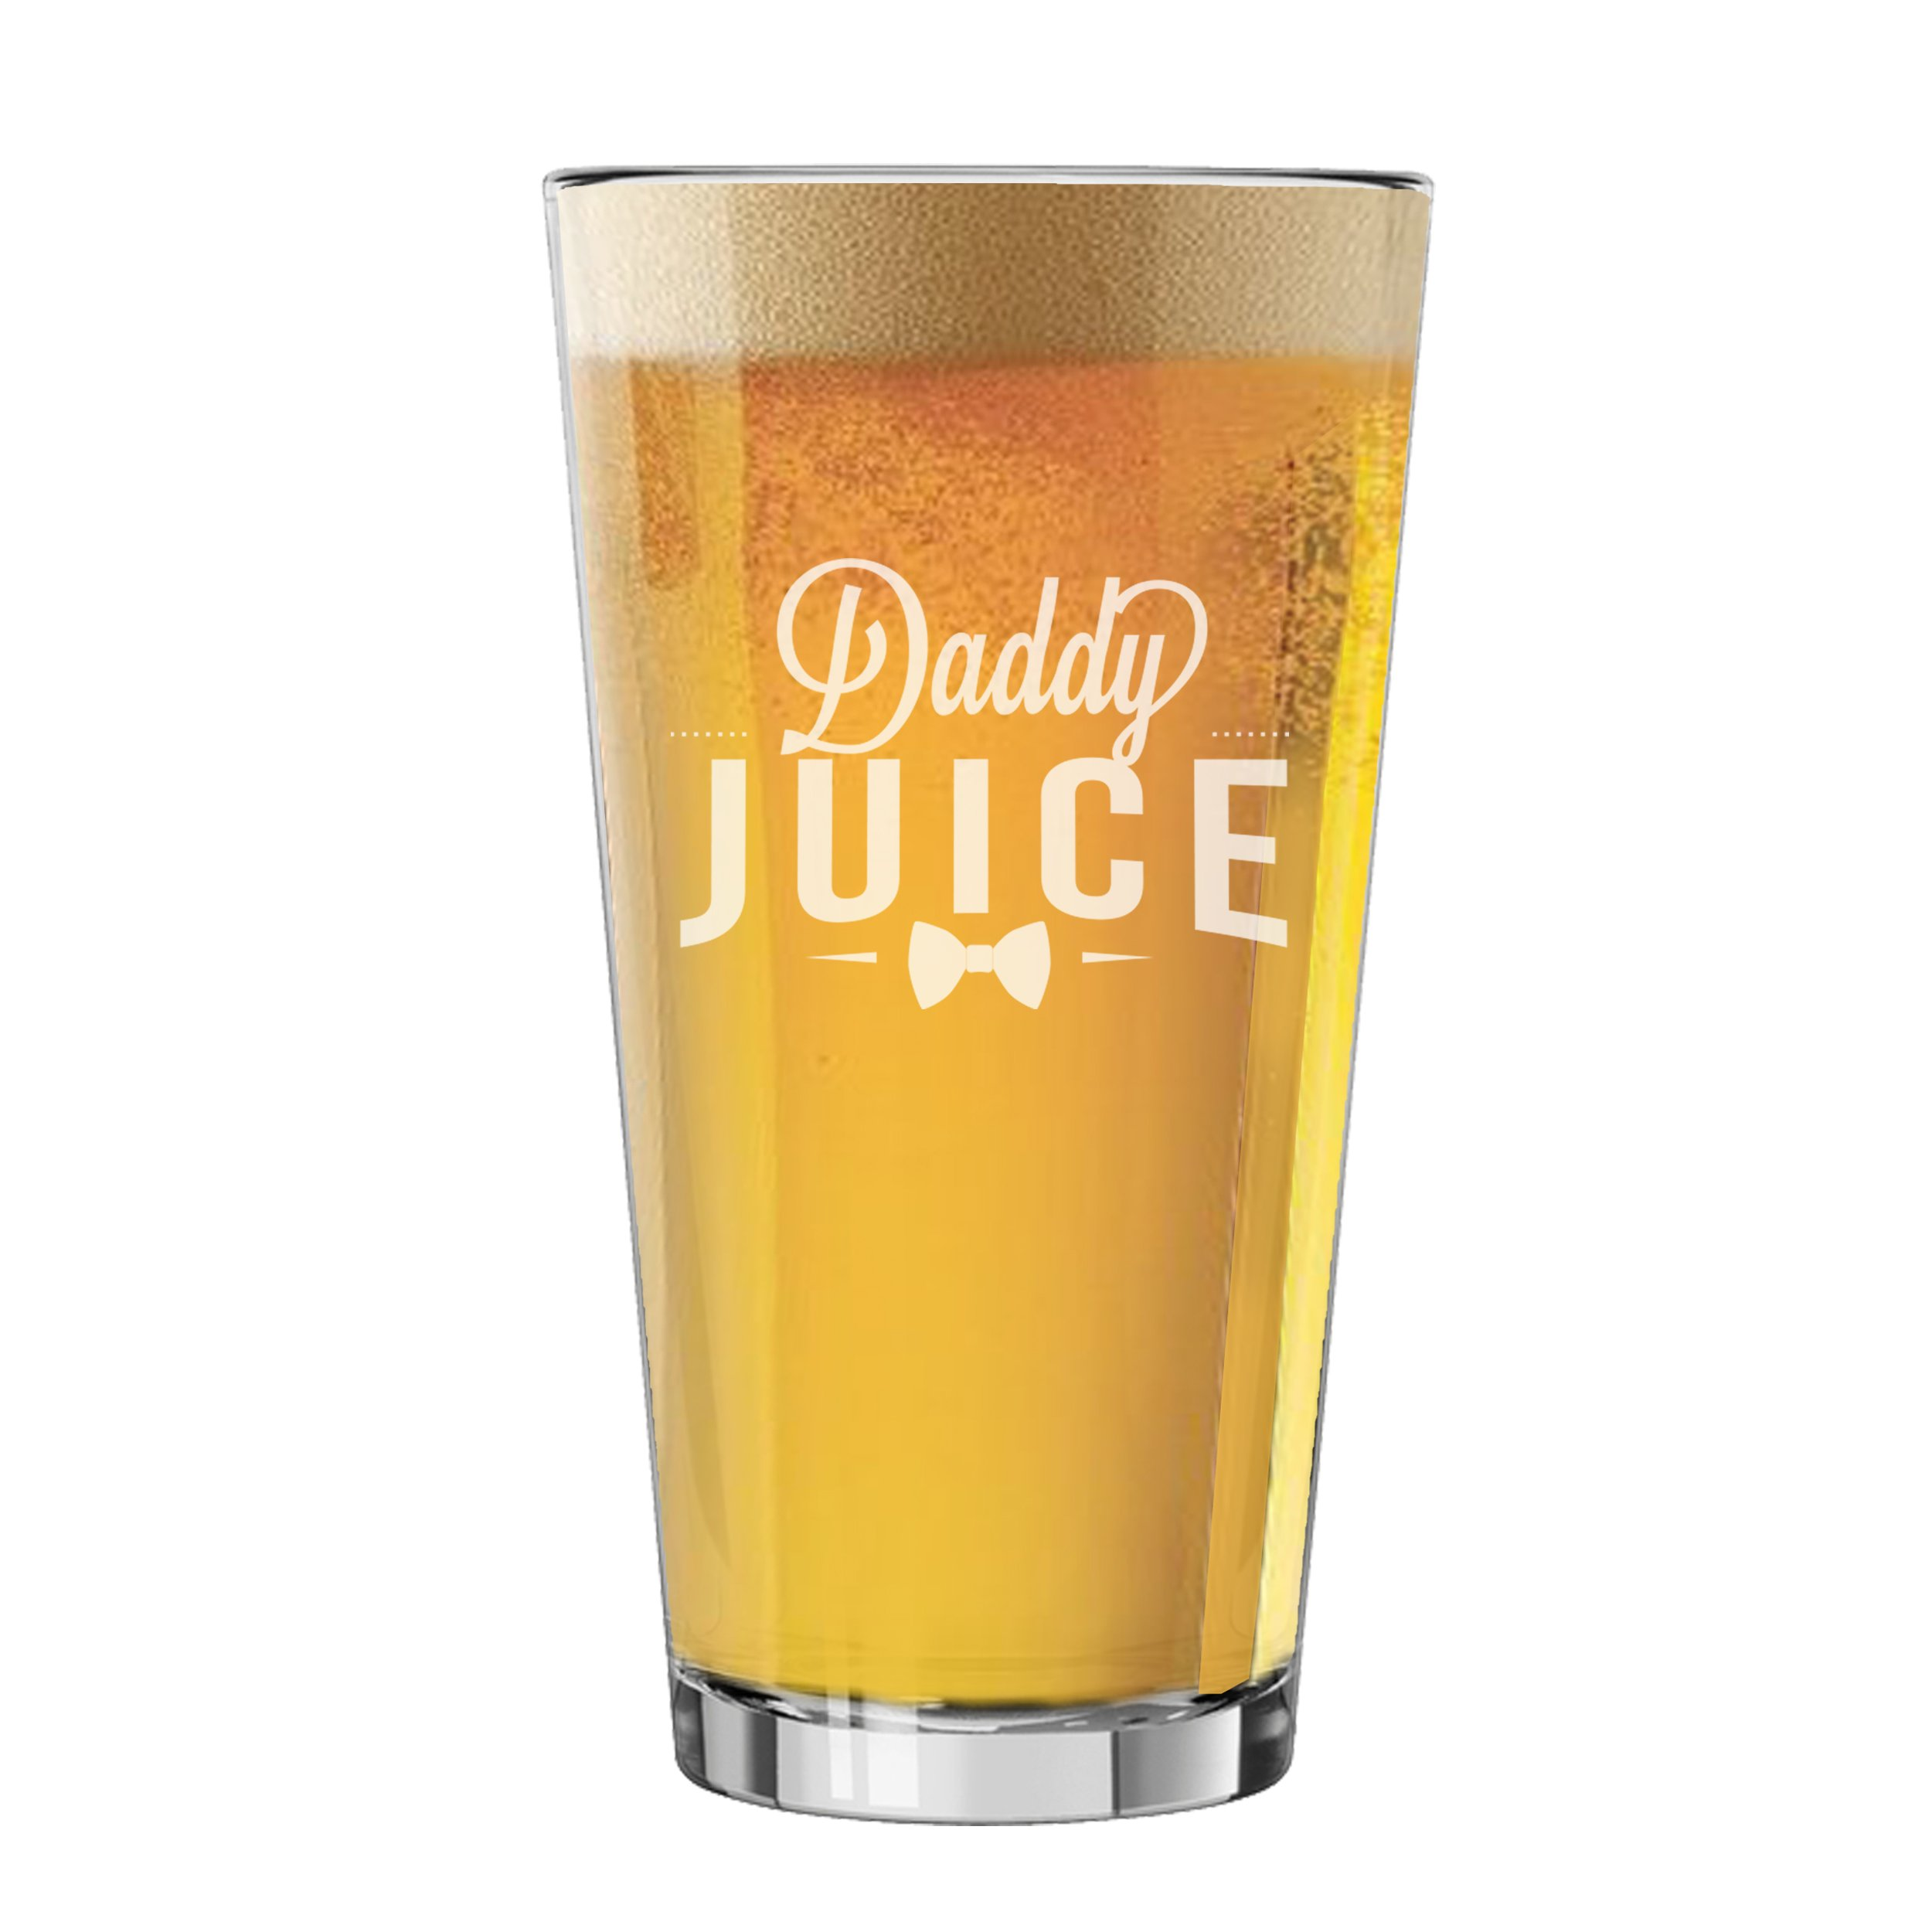 Funny Pint Glasses for Men - Fun Beer Lovers Gifts for Dad, Fathers Day, Him, Her, Birthdays (Juice Style)